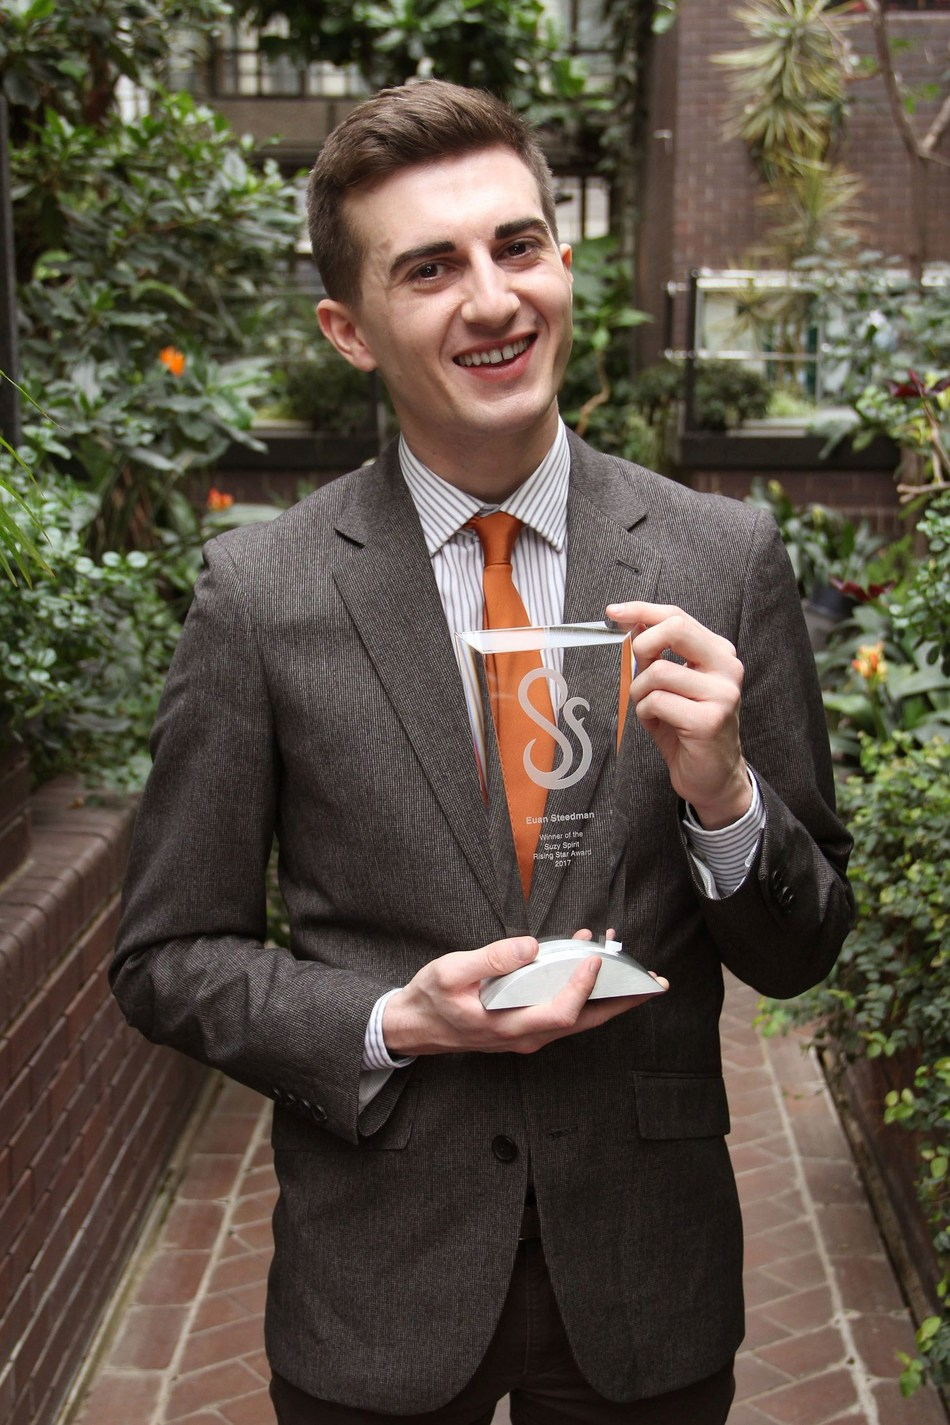 Euan Steedman - 2017 Suzy Spirit Rising Star winner (PRNewsFoto/Gorkana and LEWIS)